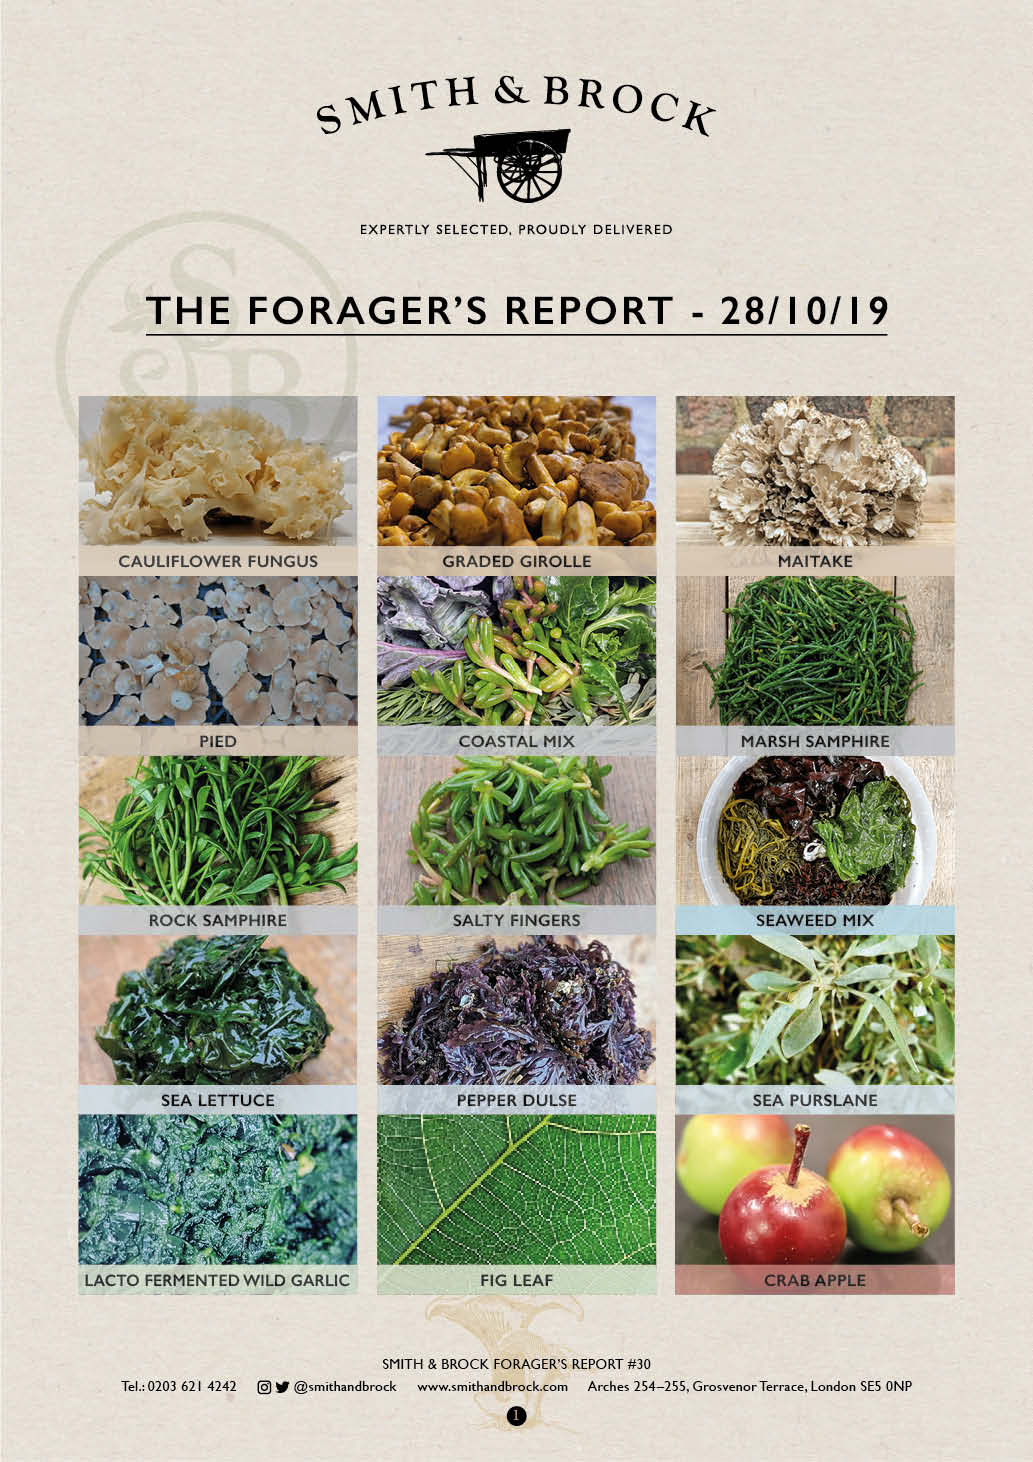 Smith&Brock Foraged Products Report 28 Oct 2019 30